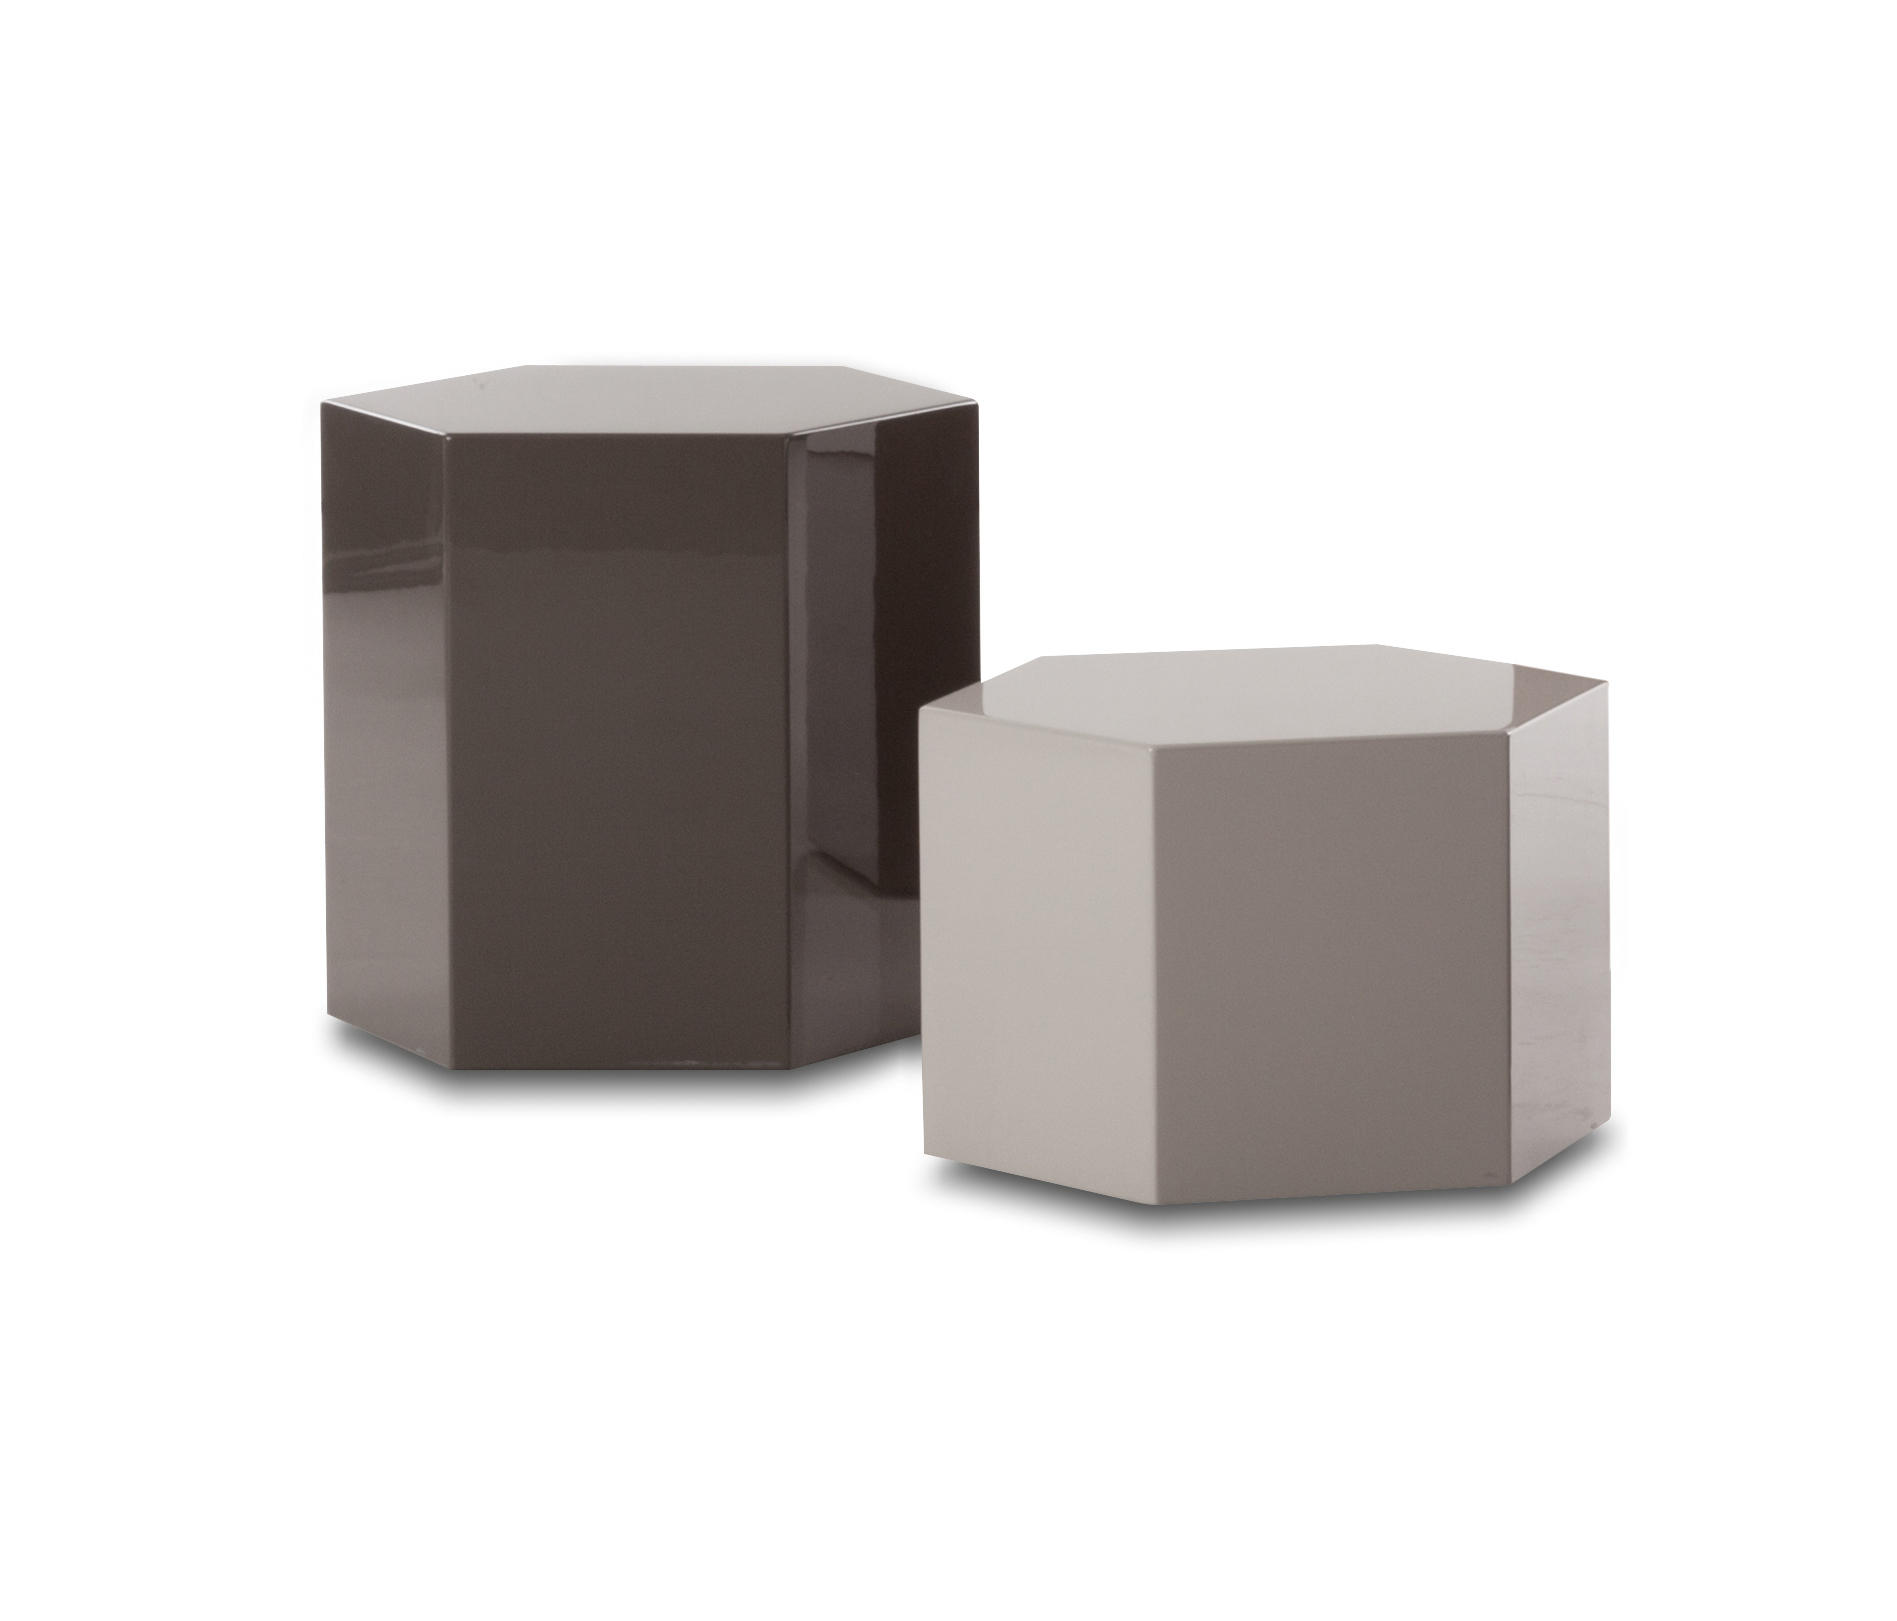 aeron outdoor accent tables side from minotti architonic table groups entry decor ideas avalon round metal and glass nightstand small ginger jar lamps study desk sofa chair set